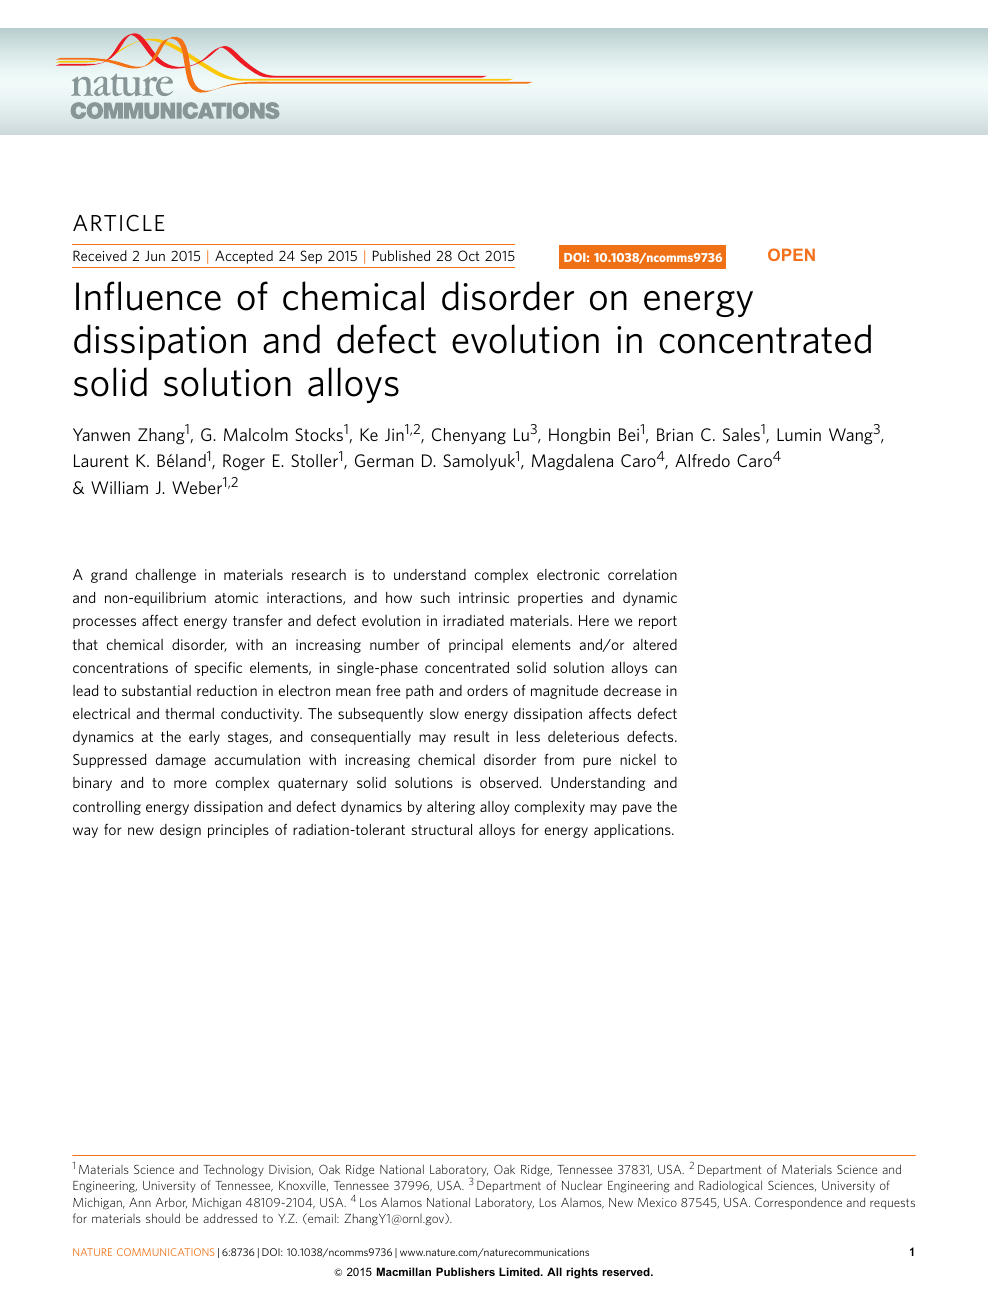 Influence of chemical disorder on energy dissipation and defect